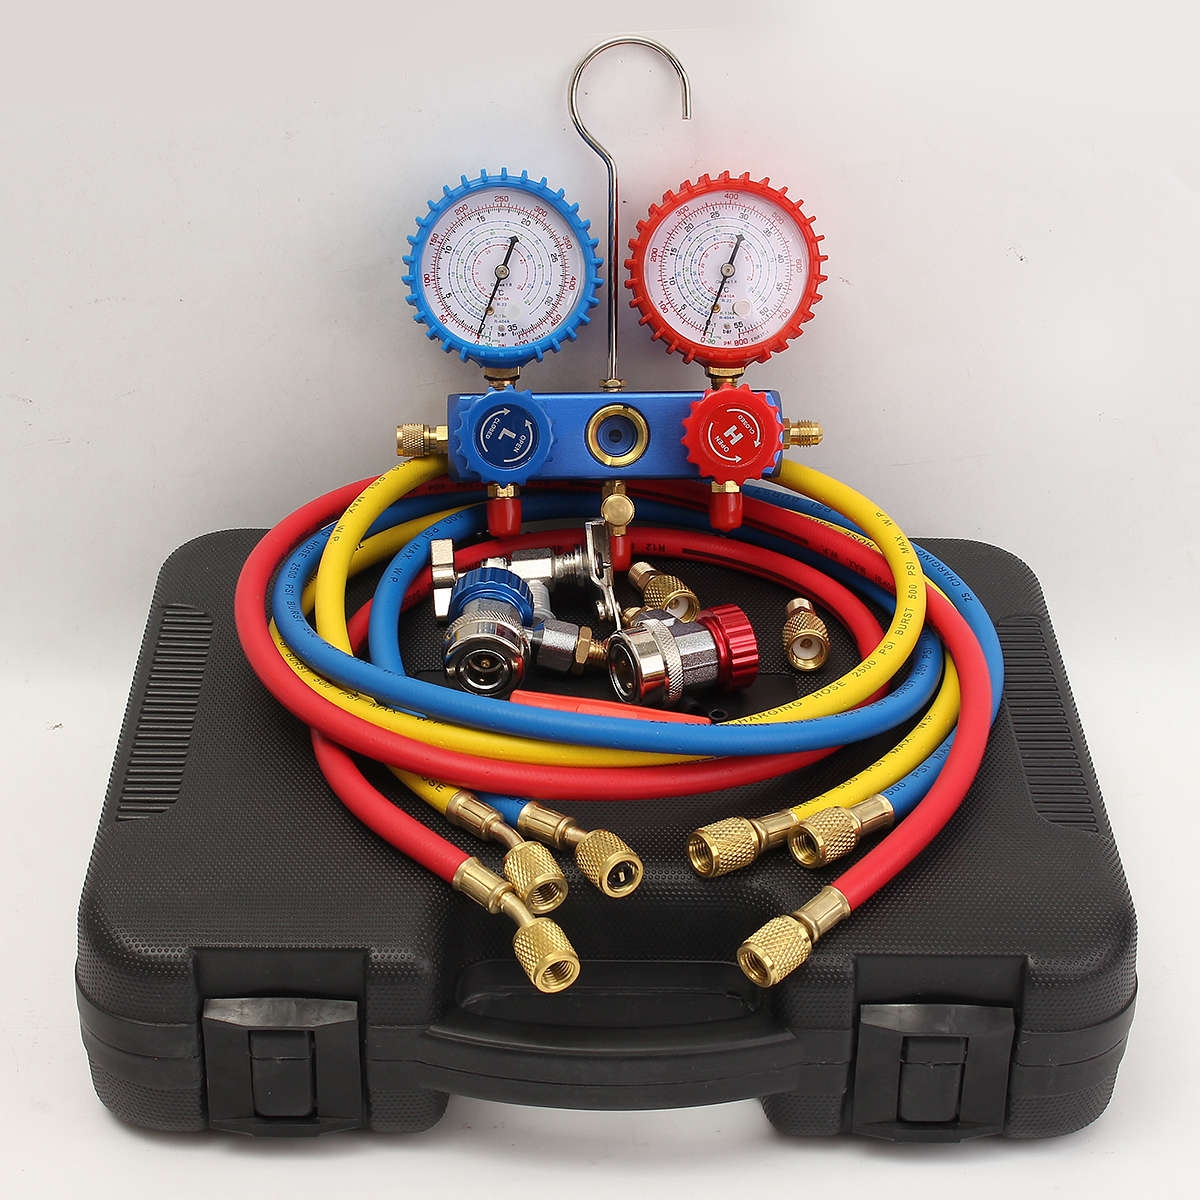 Universal R22 R12 R134A HVAC A/C Manifold Gauge W/3 CHARGE HOSES Quick Adapter & 2 ACME price in nigeria